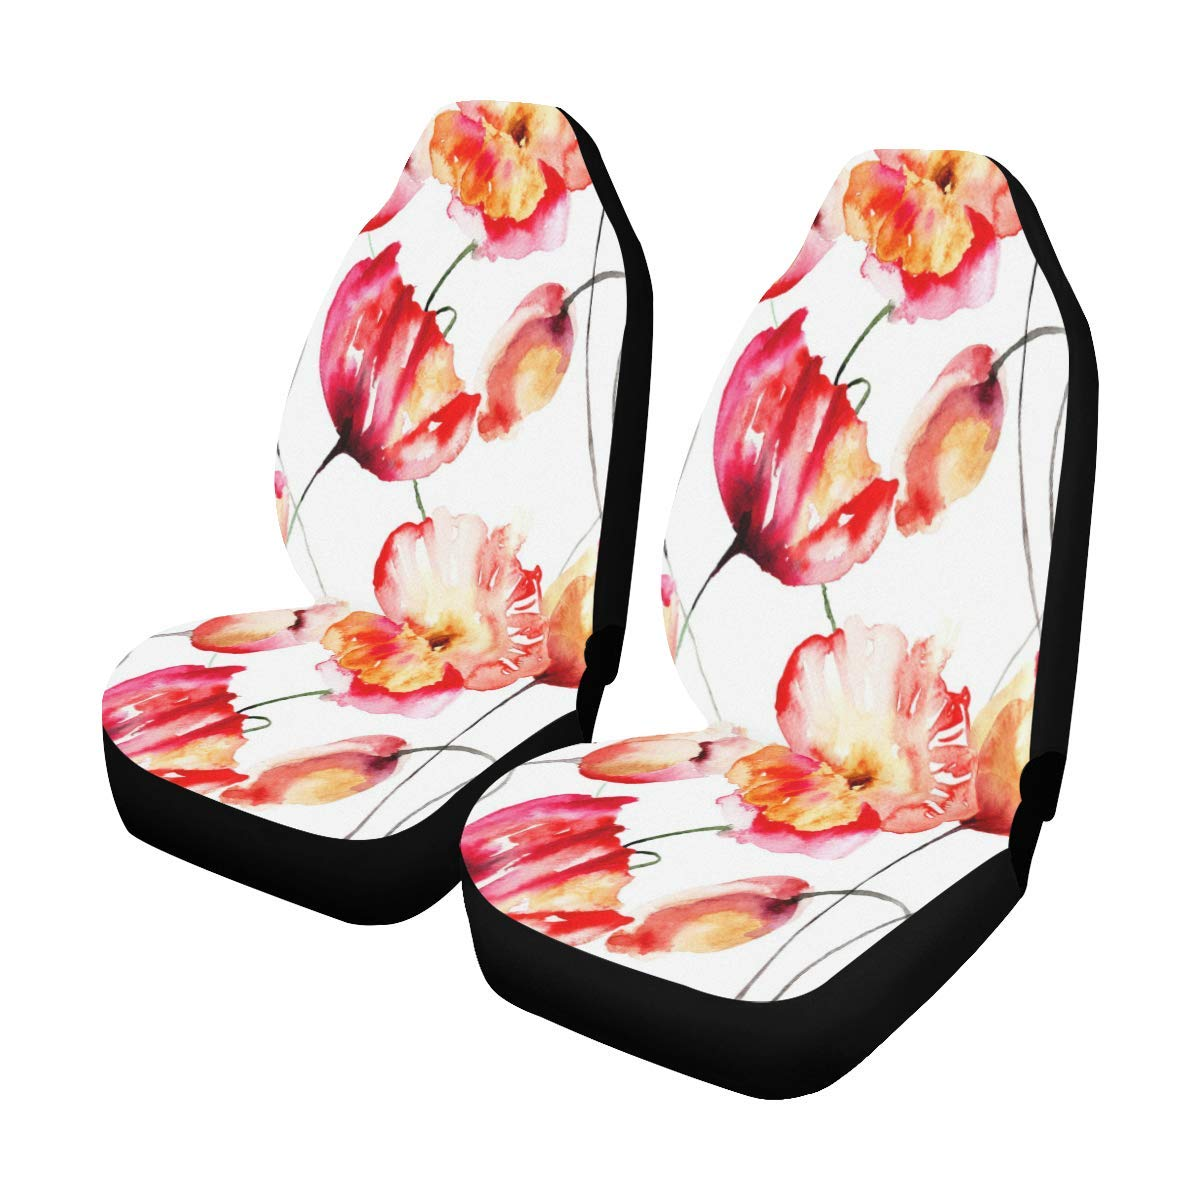 INTERESTPRINT Tulips and Poppy Flowers Car Seat Covers Set of 2 Vehicle Seat Protector Car Covers for Auto Cars Sedan SUV